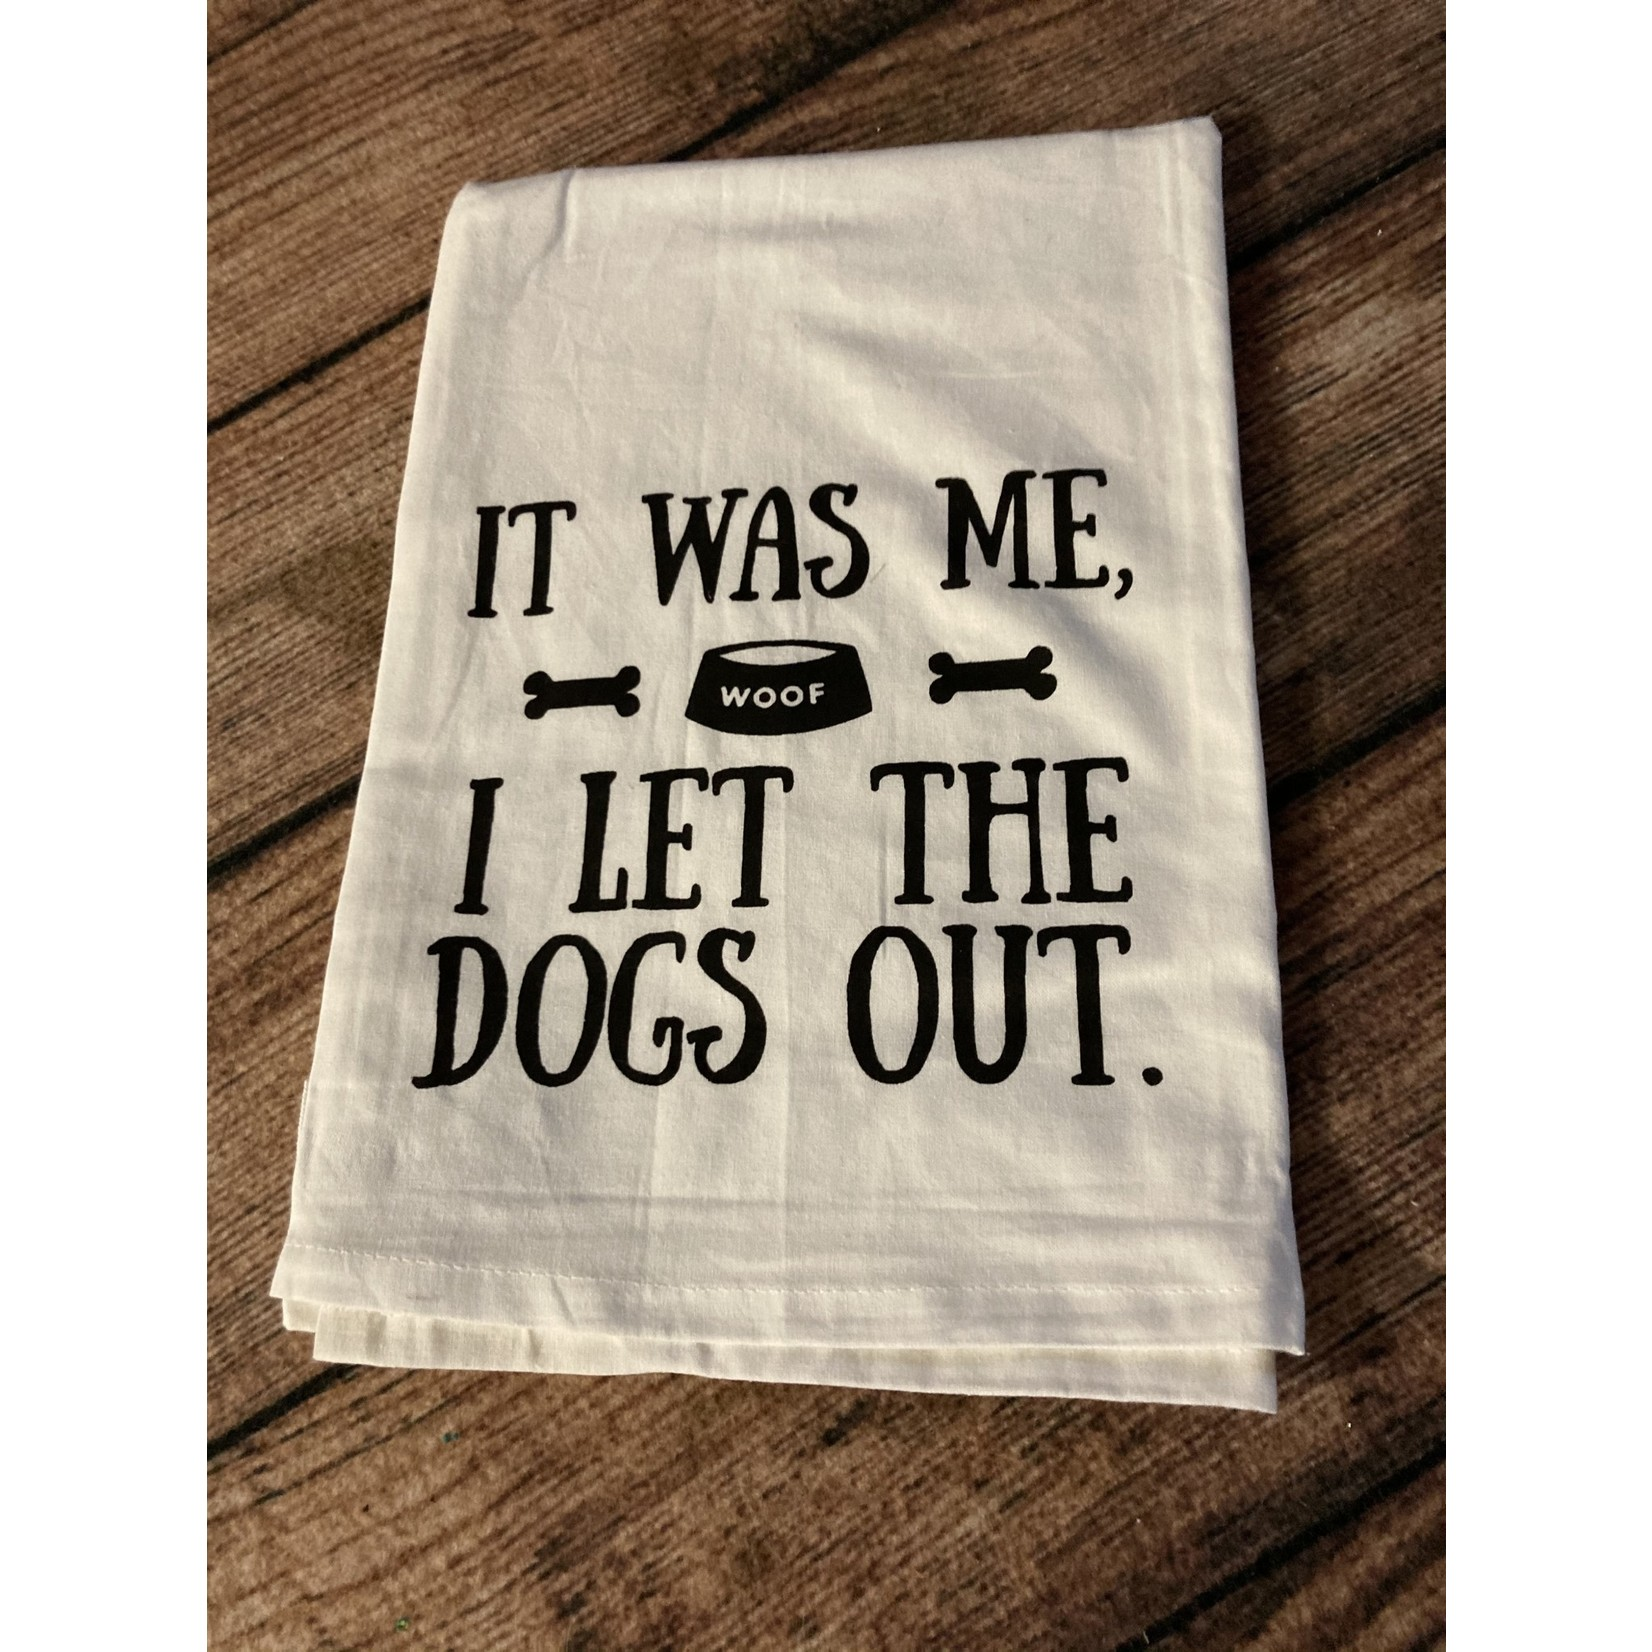 Twisted Wares Twisted wares Tea towel   Let the dogs out